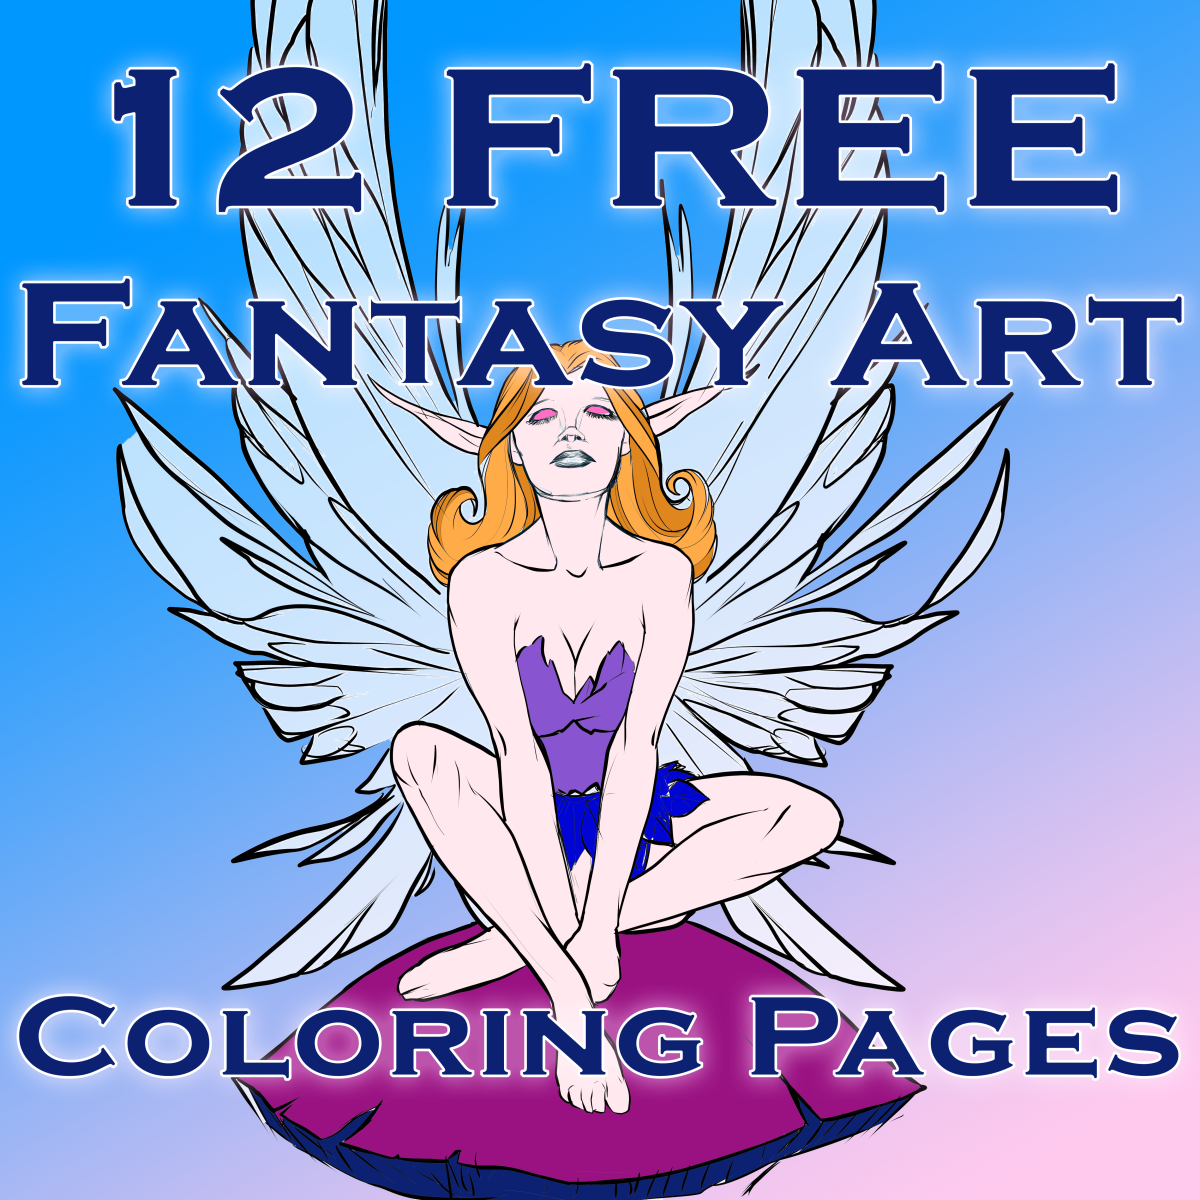 Fantasy Art Coloring Pages: 12 Free Printable Coloring Pages ...